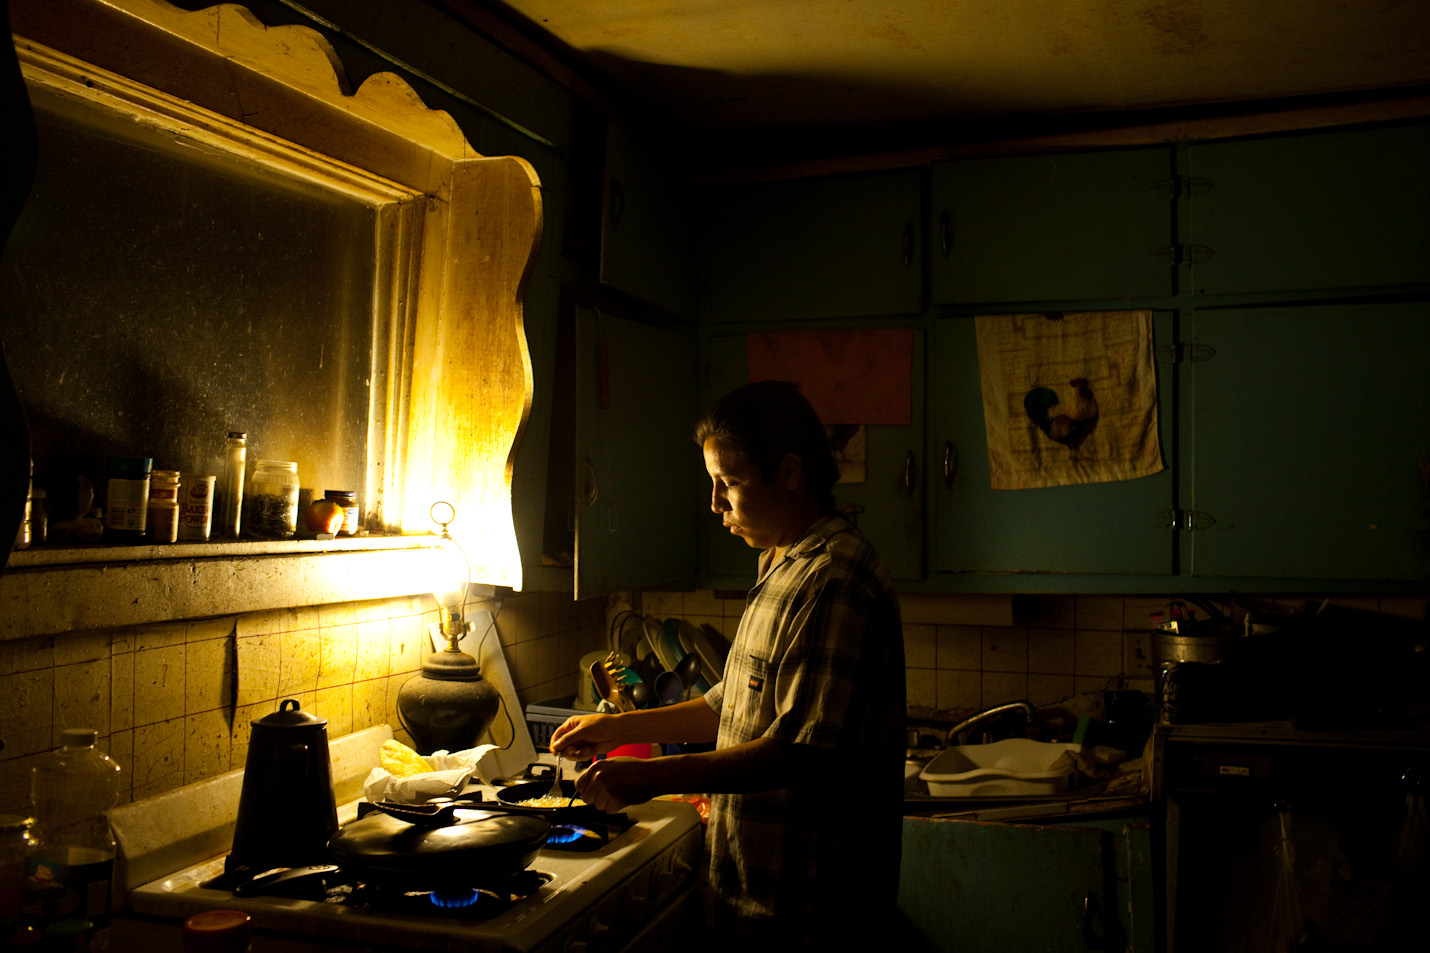 Rich Lone Elk, 24, cooks dinner at his house in Pine Ridge, South Dakota.  The house, which lacks basic amenities like plumbing is home to as many as 8 people.